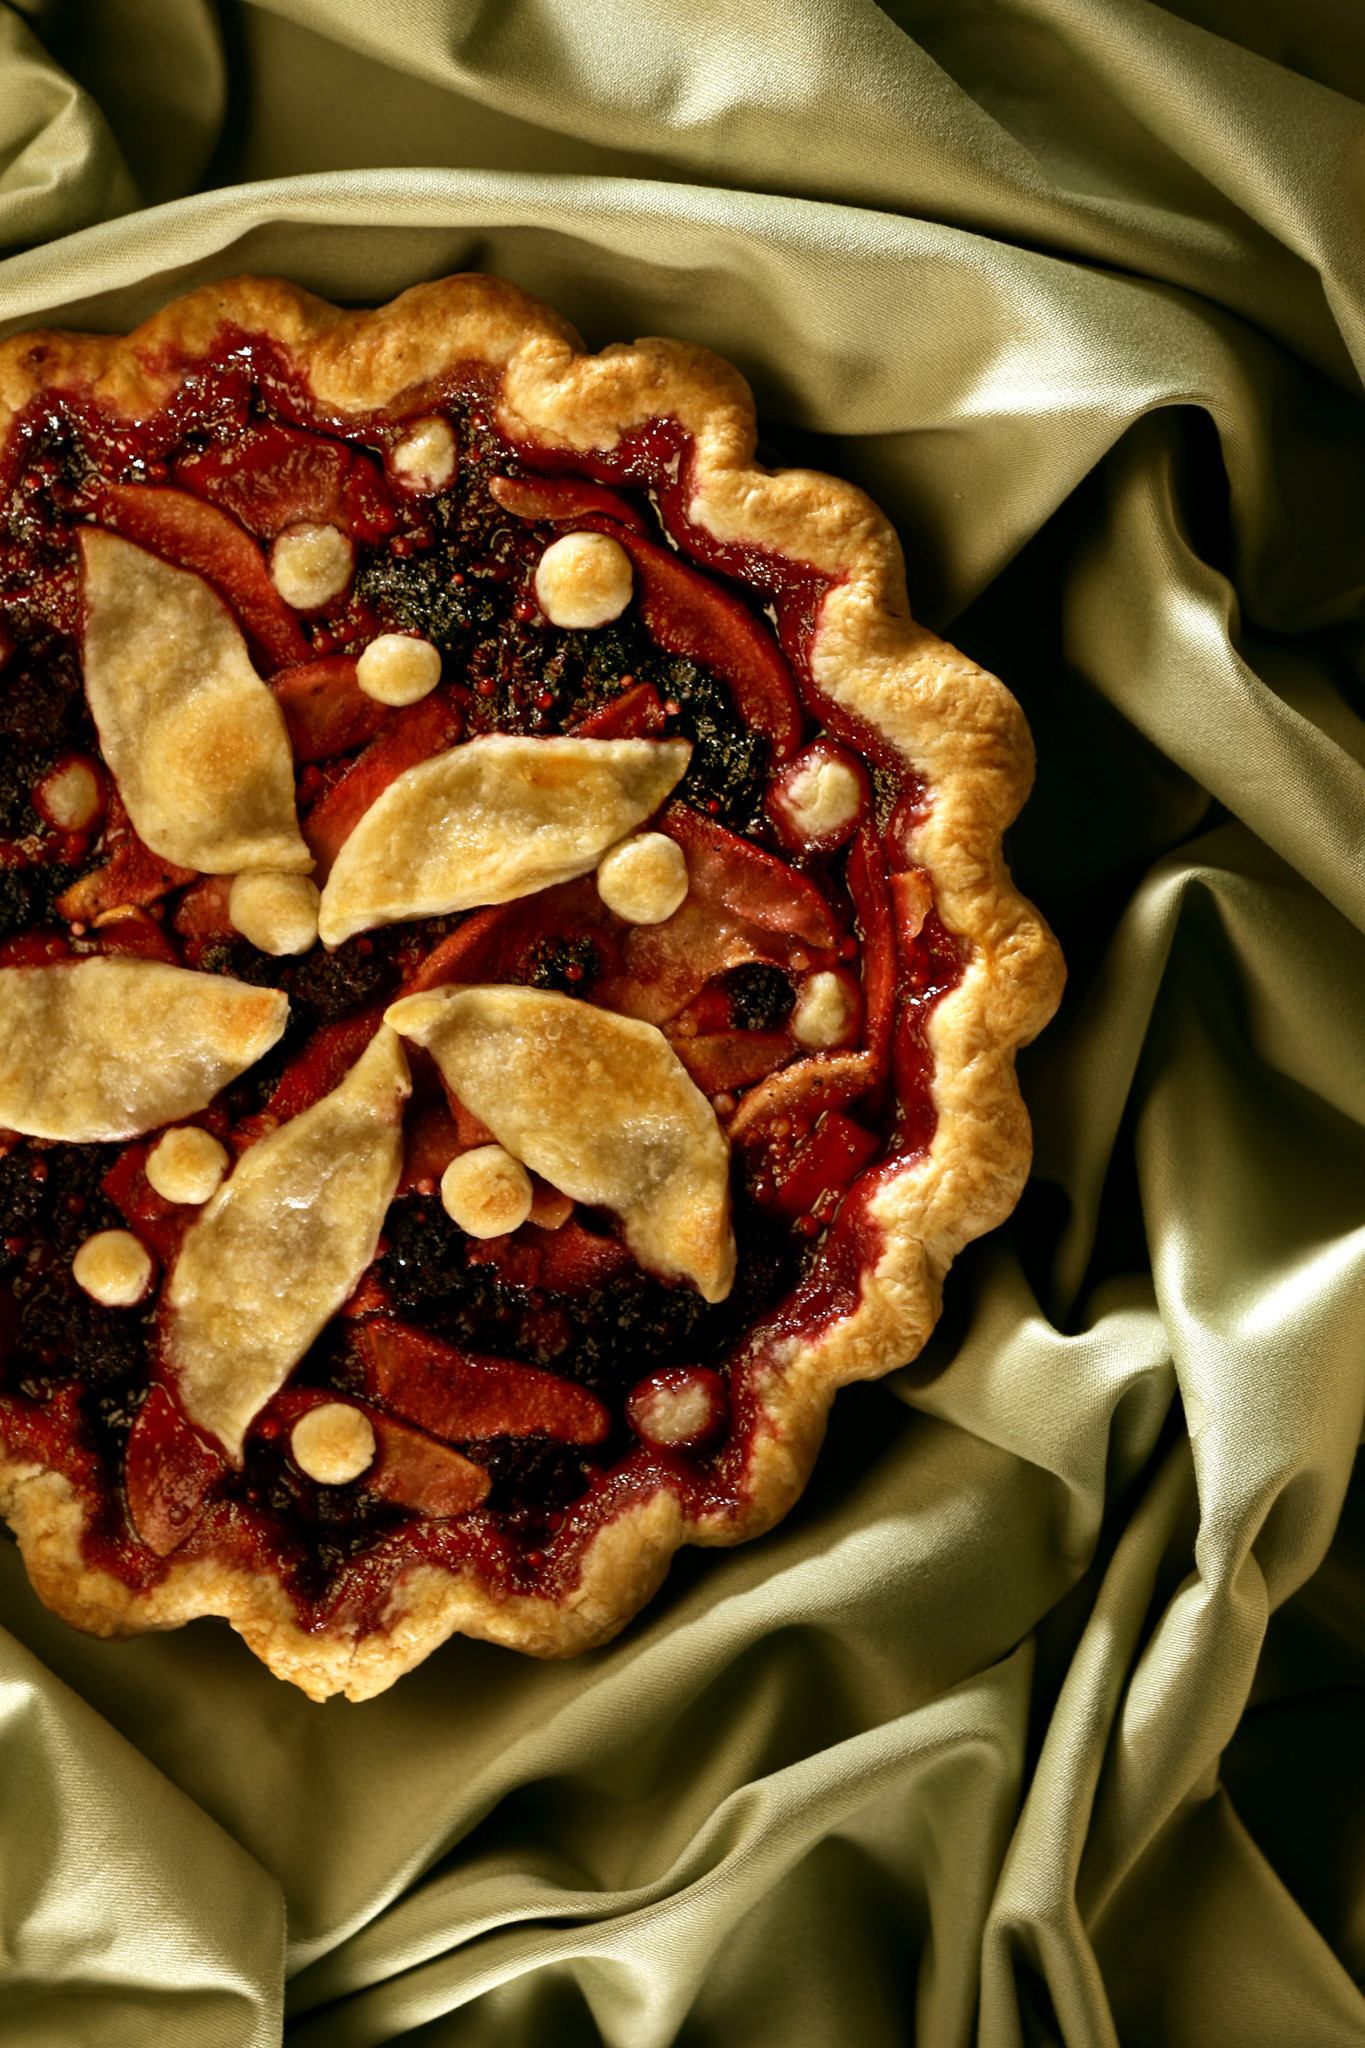 Photos: 97 great Thanksgiving recipes - Pear-blackberry pie